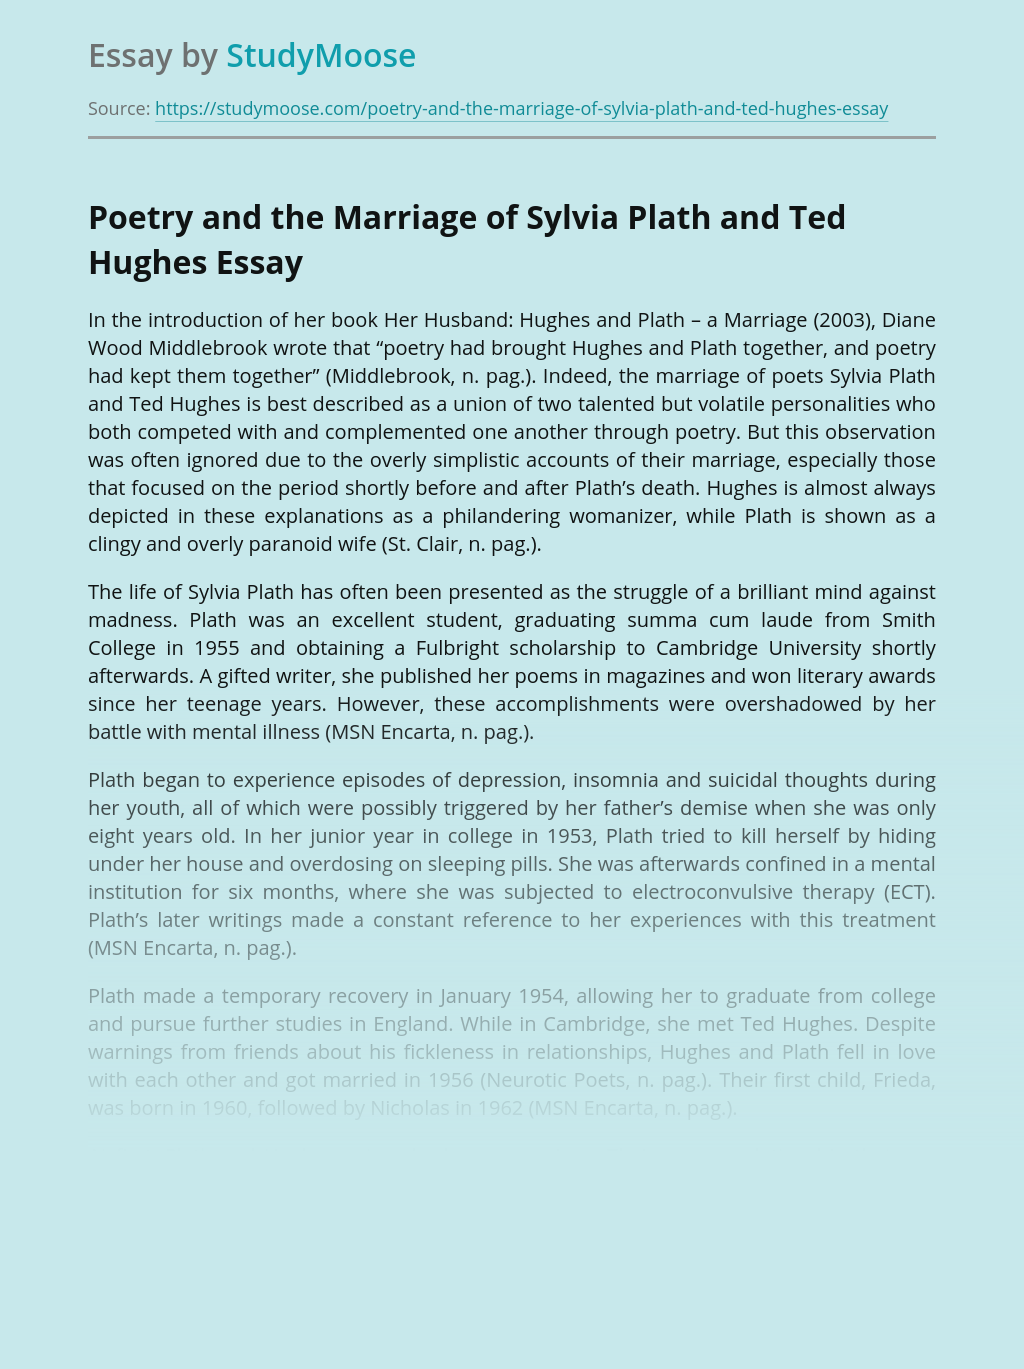 Poetry and the Marriage of Sylvia Plath and Ted Hughes